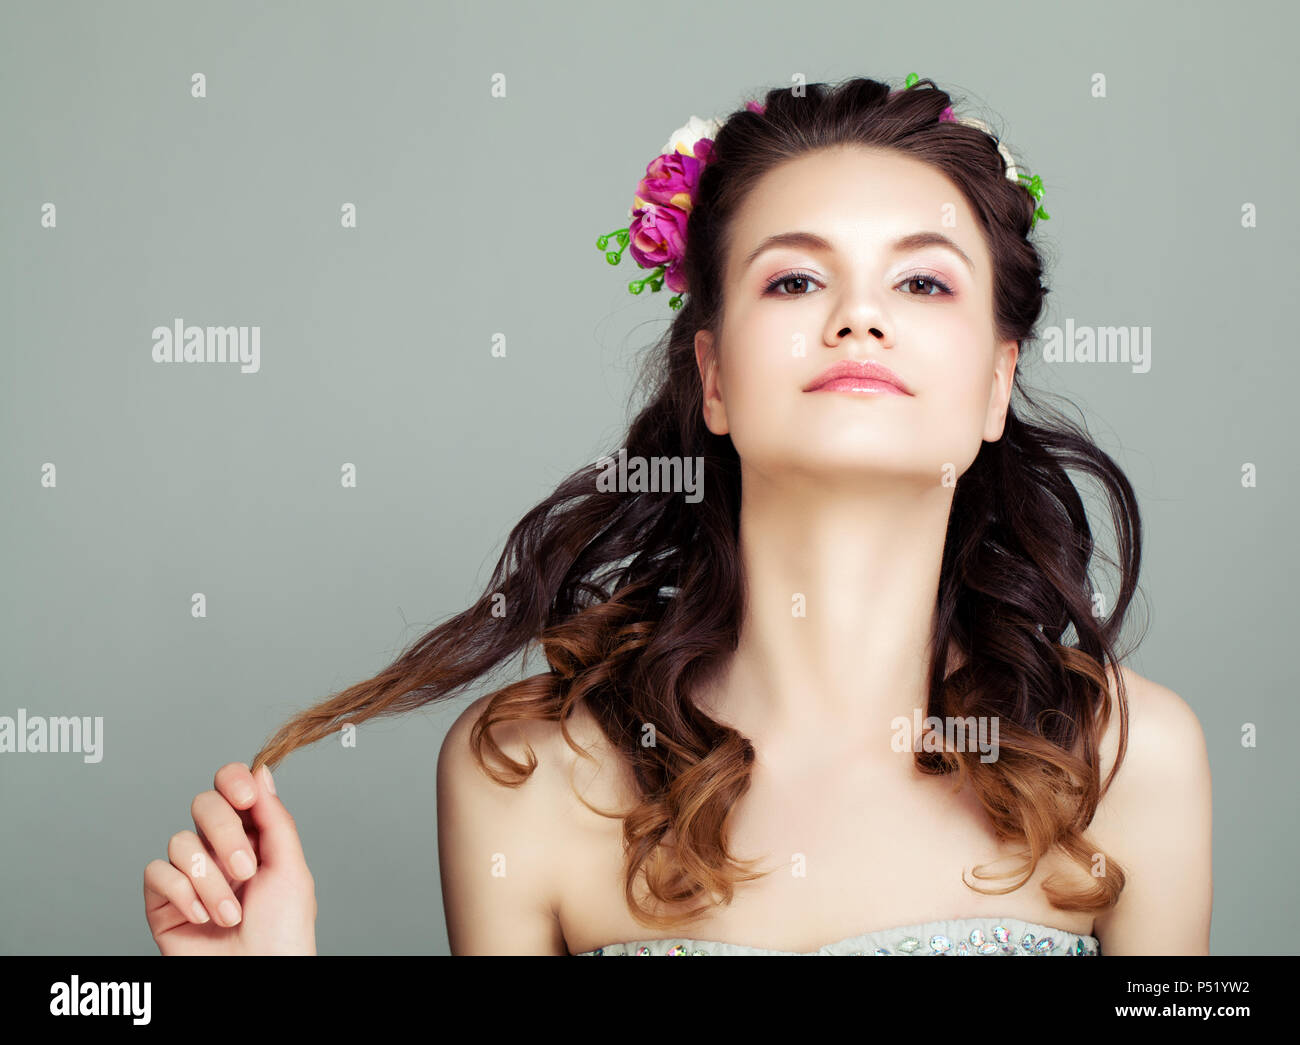 Young Woman With Flowers In Hair Portrait Cute Prom Girl With